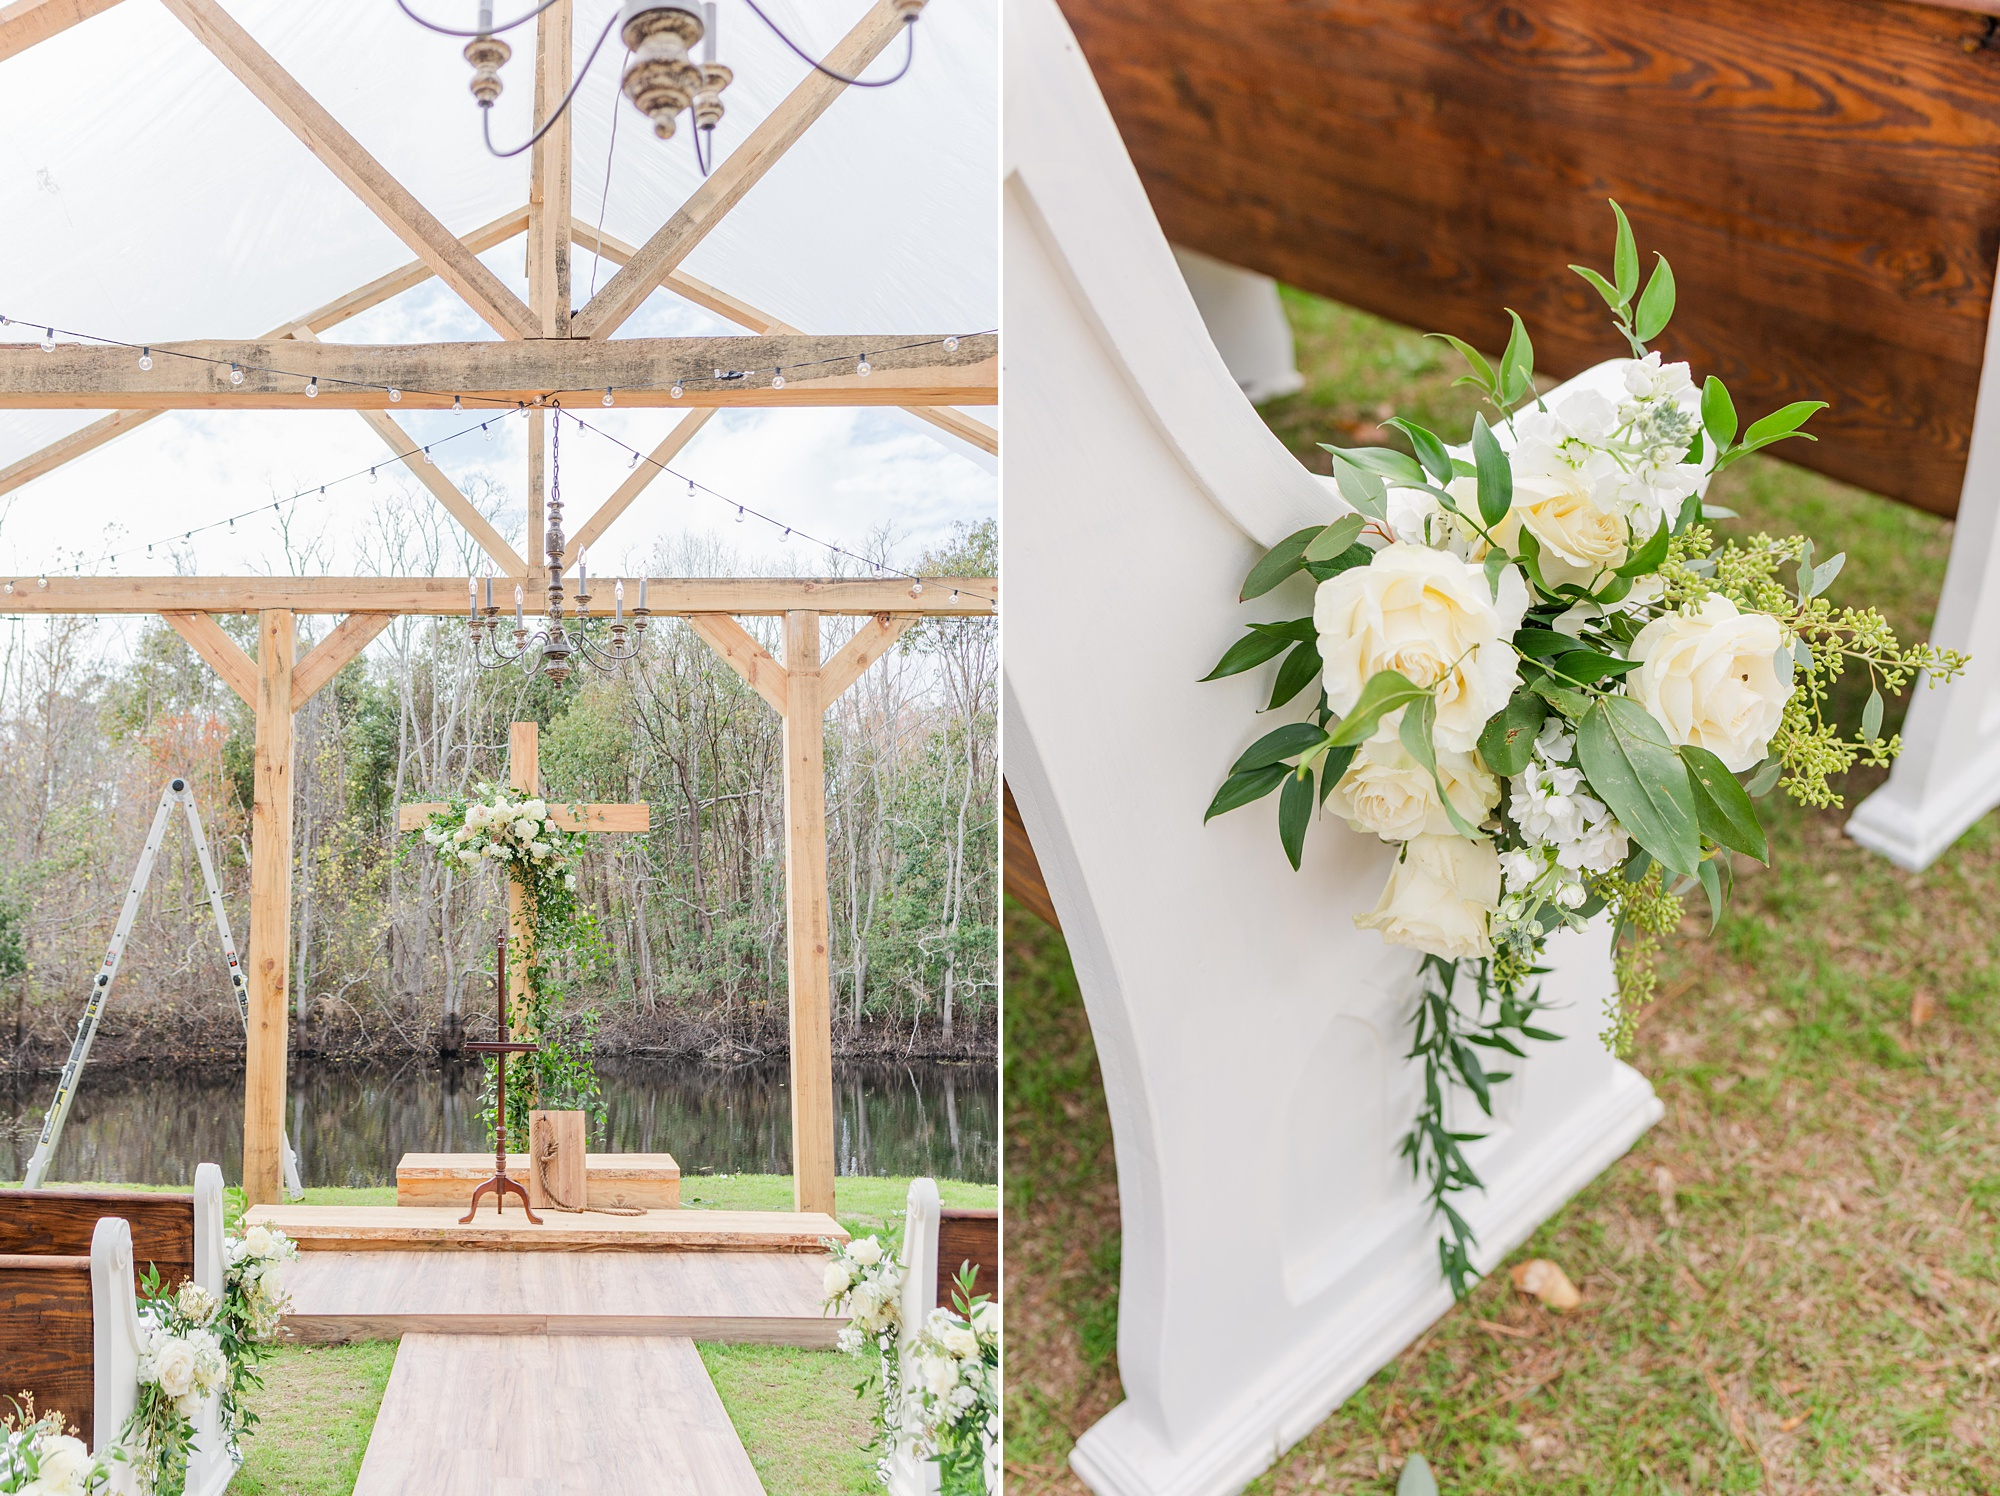 wooden pews for outdoor New Year's Eve wedding